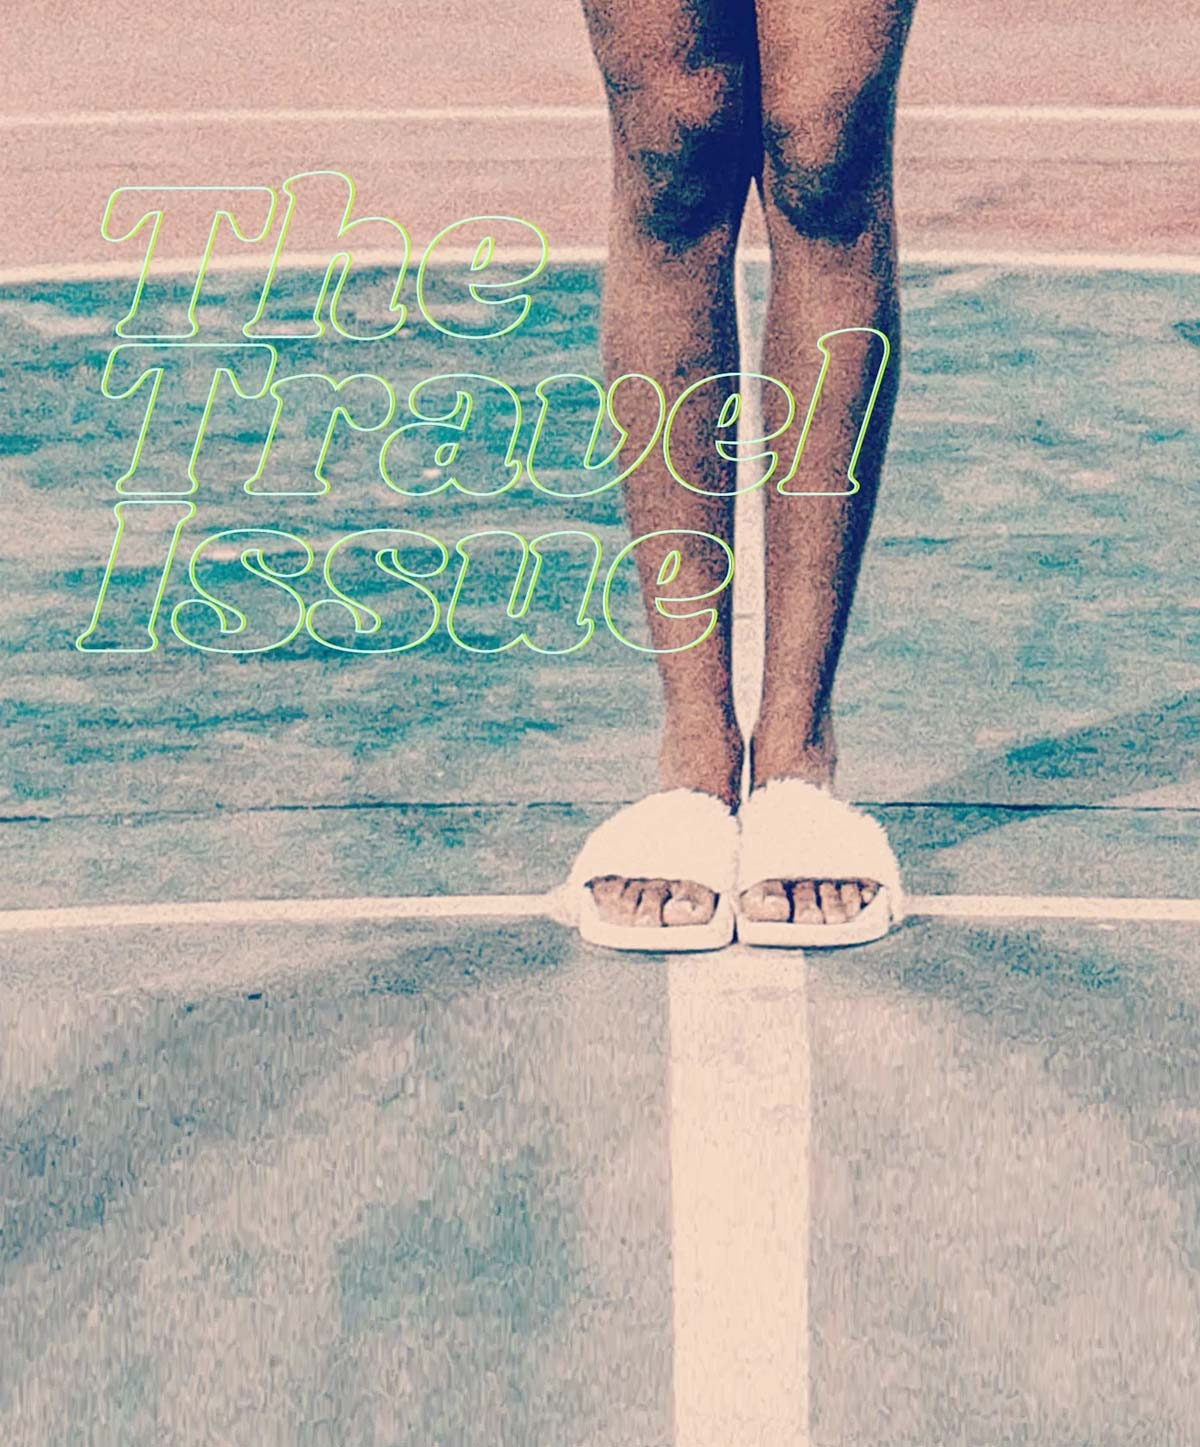 the travel issue [image is legs in slippers standing in tennis court]